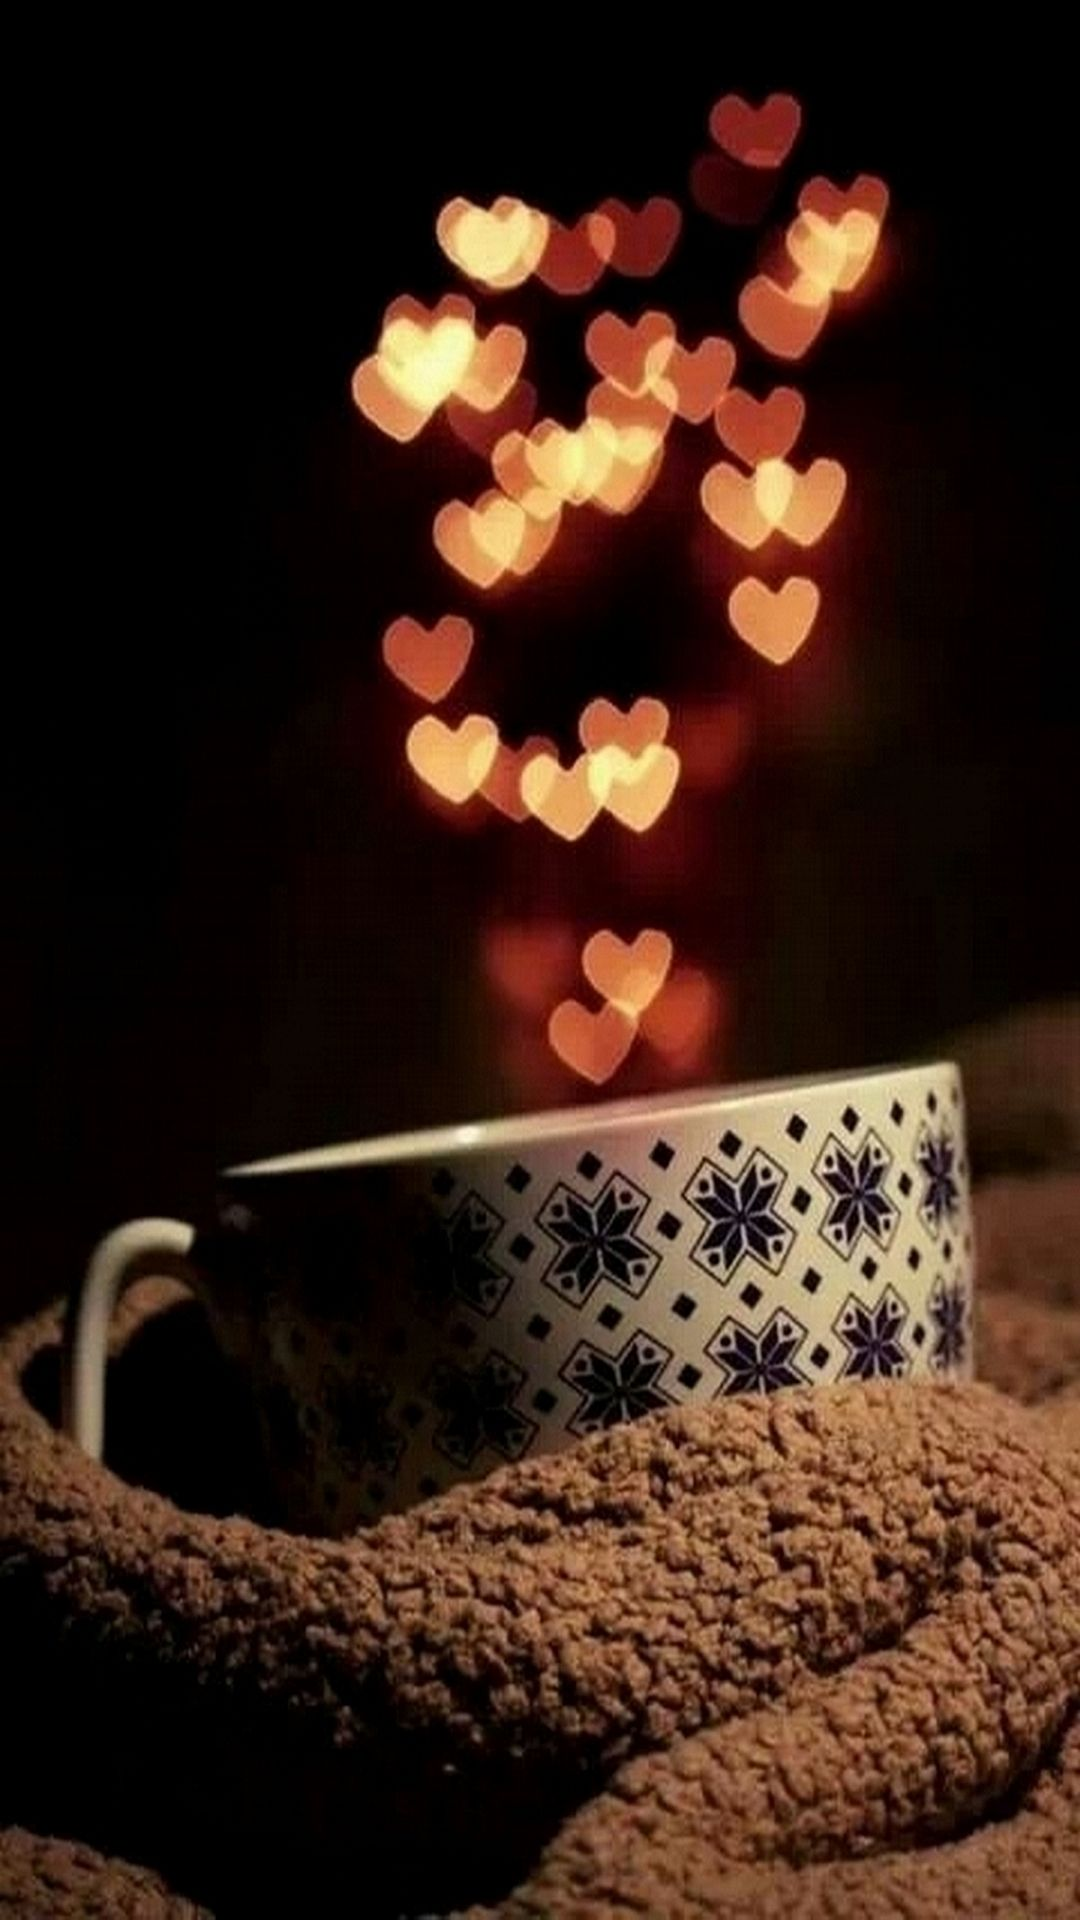 Pin by Vactual Papers on Mobile Wallpapers Coffee love